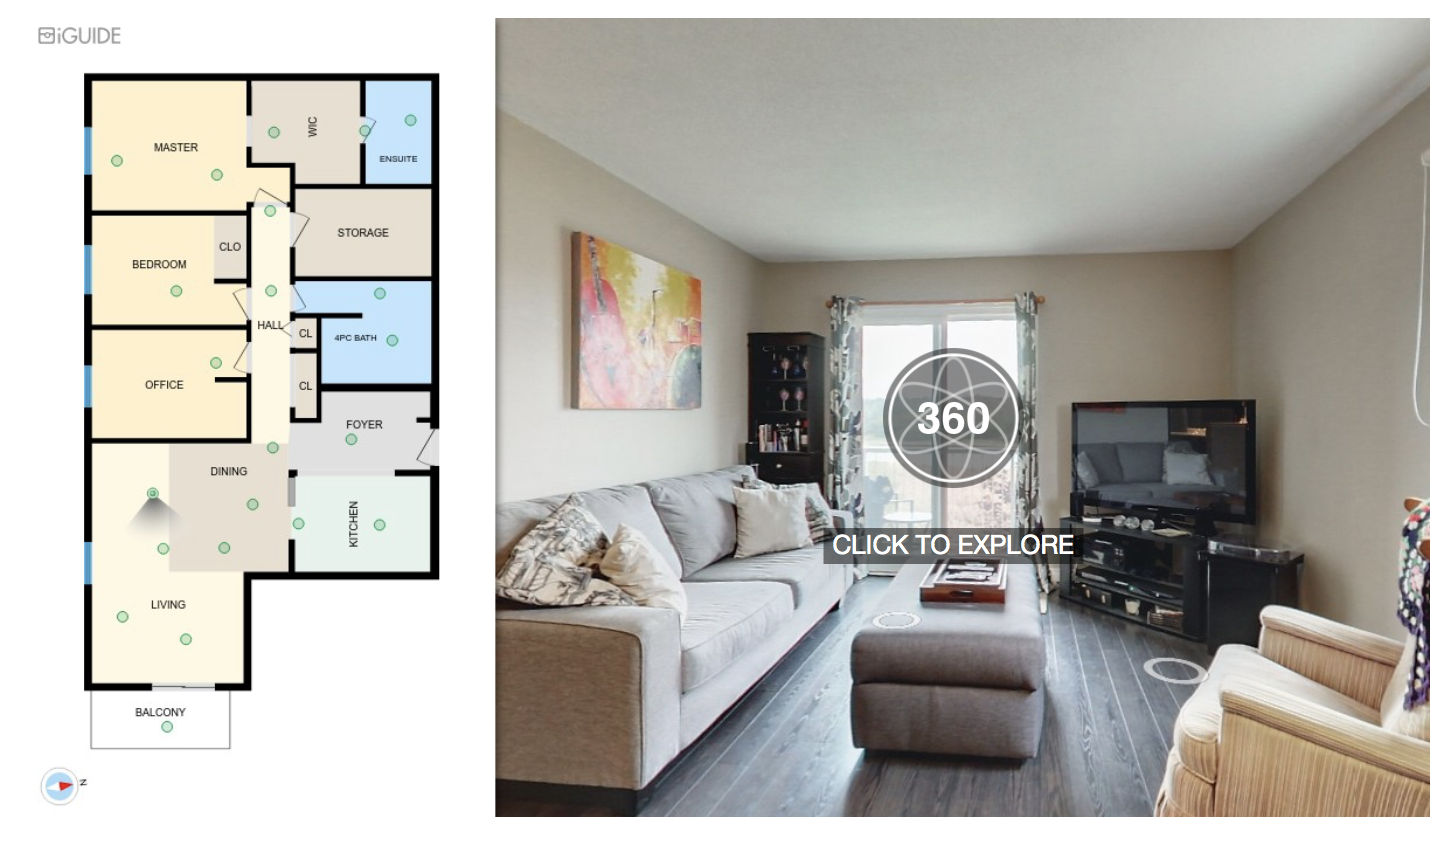 The virtual tour is unavailable because this property is now sold.